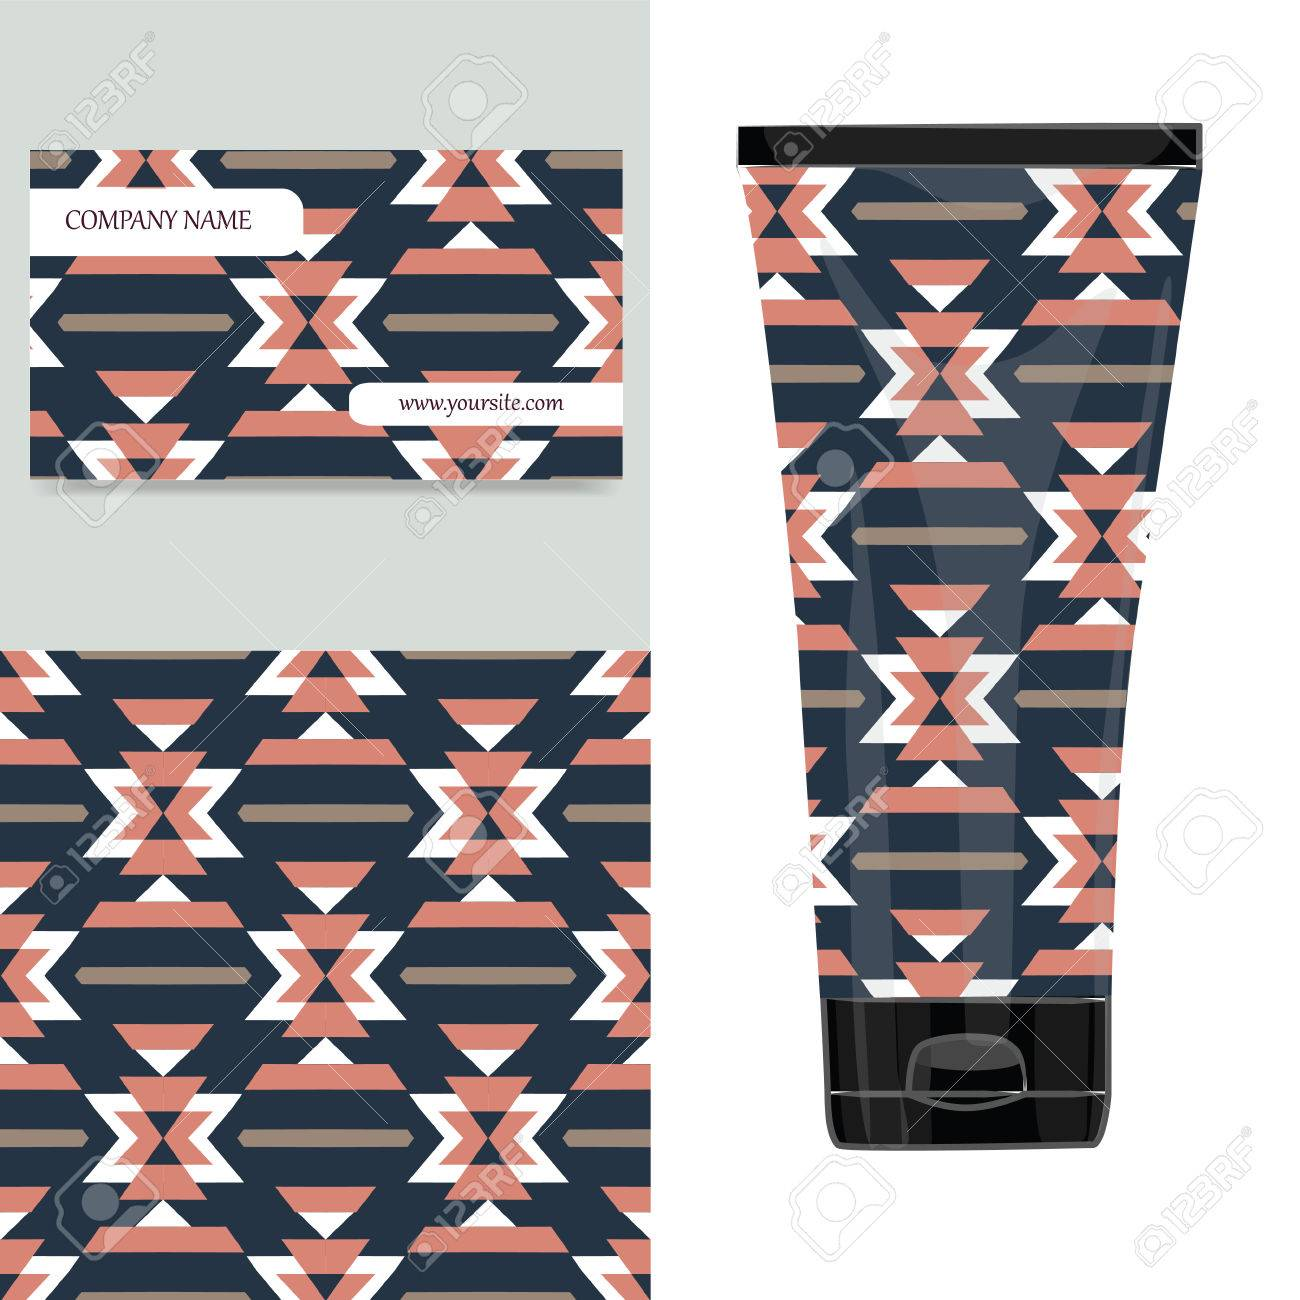 Cream tube pattern with aztec tribal pattern  illustration